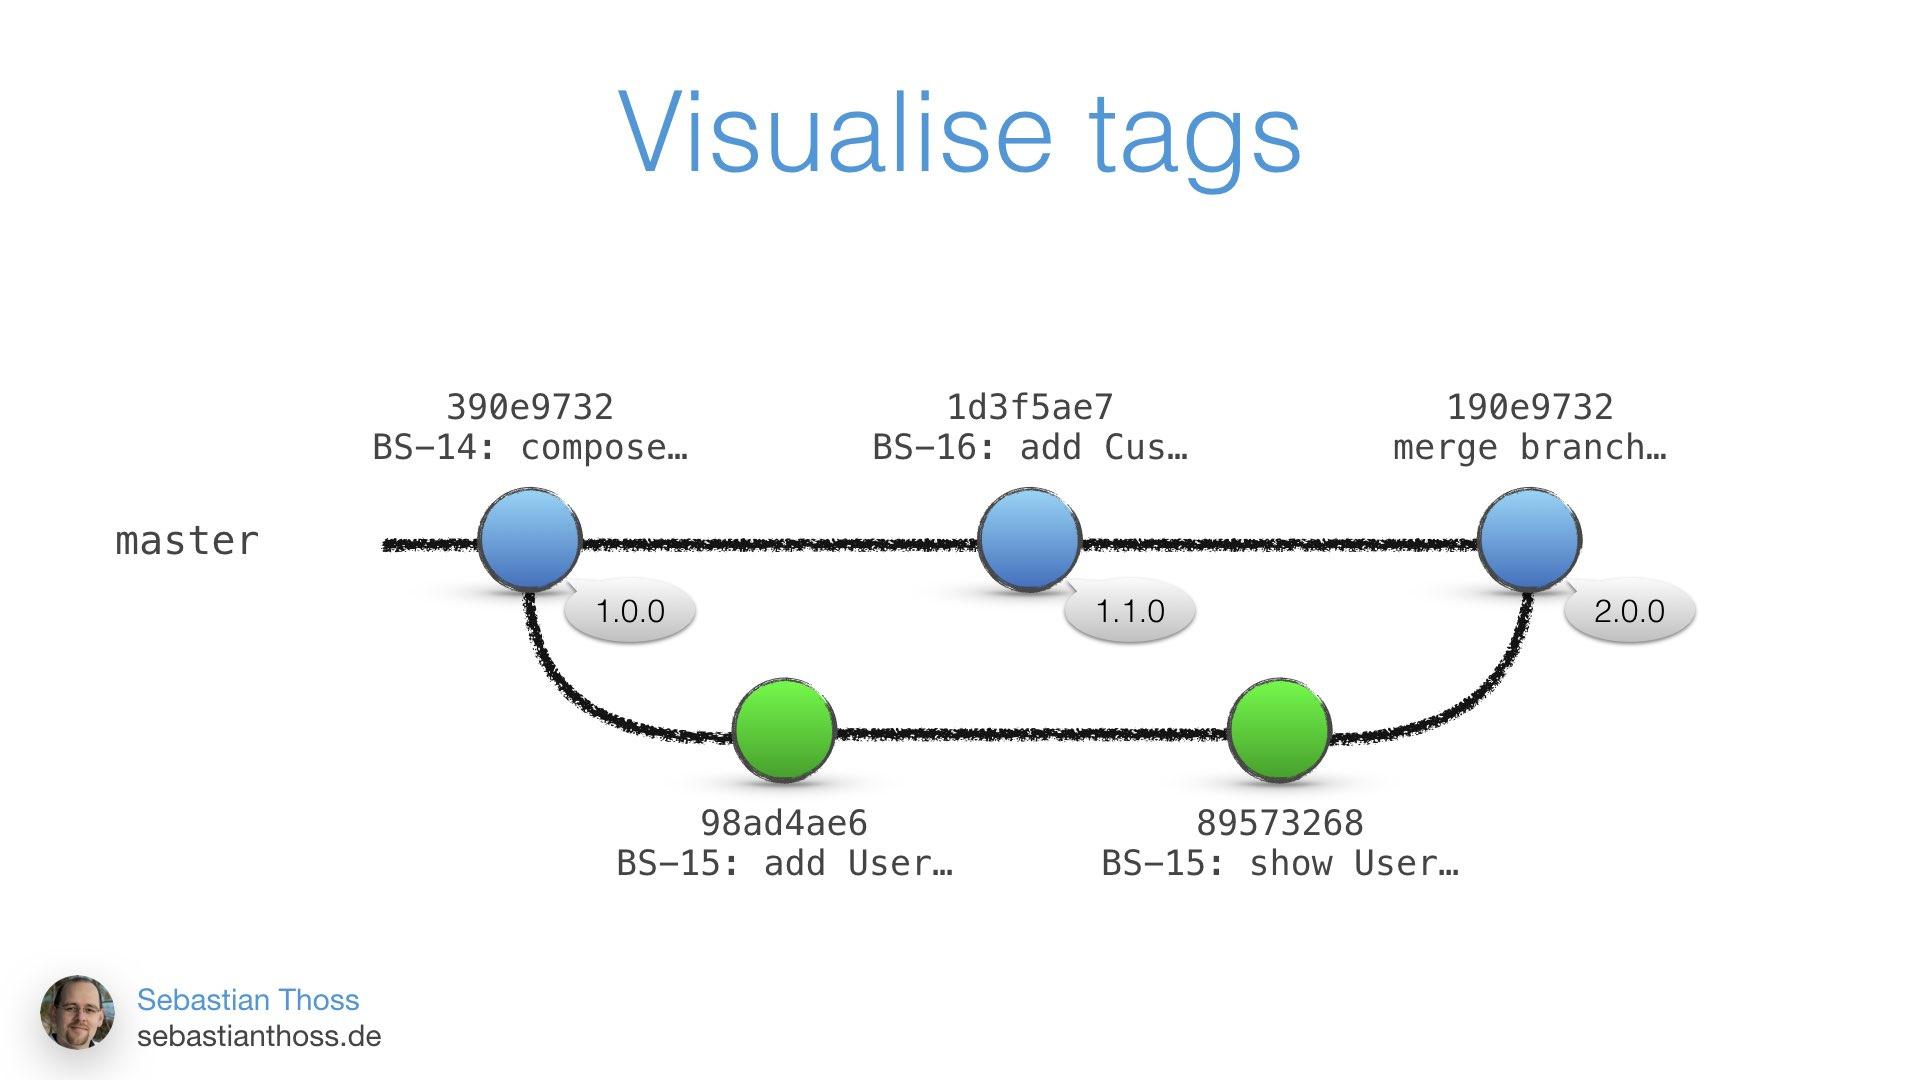 This slide shows how you can visualise tags on master branch